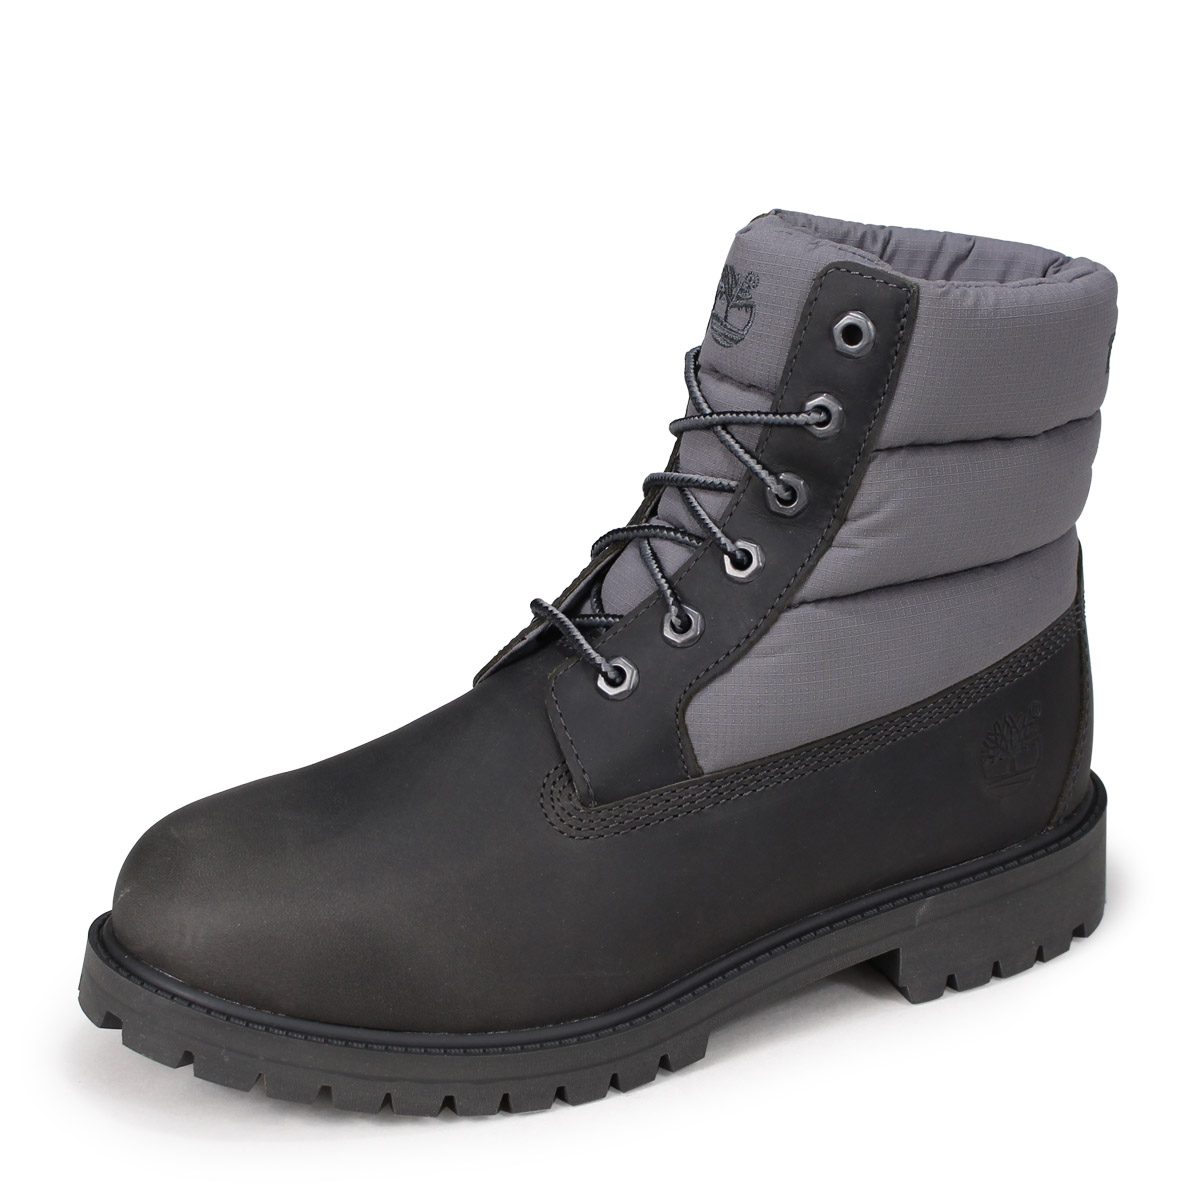 Timberland JUNIOR 6 INCH PREMIUM QUILT BOOTS Timberland boots Lady's 6 inches kids A1UYX M Wise dark gray [1810]